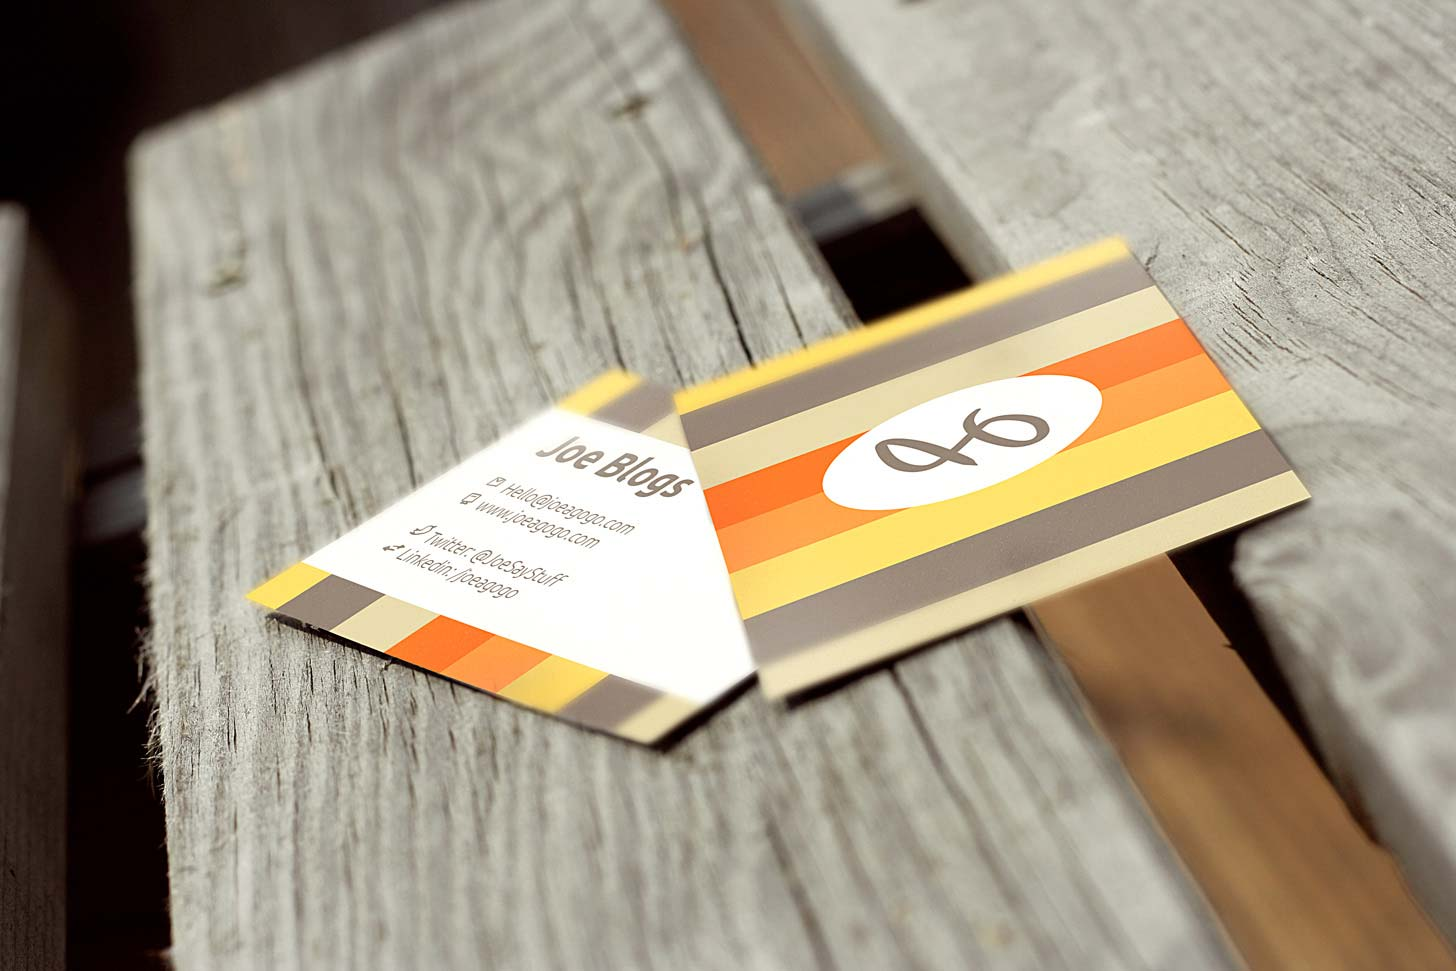 Square business card mockup unlimitedgamers mini business cards free caroleandellie reheart Image collections